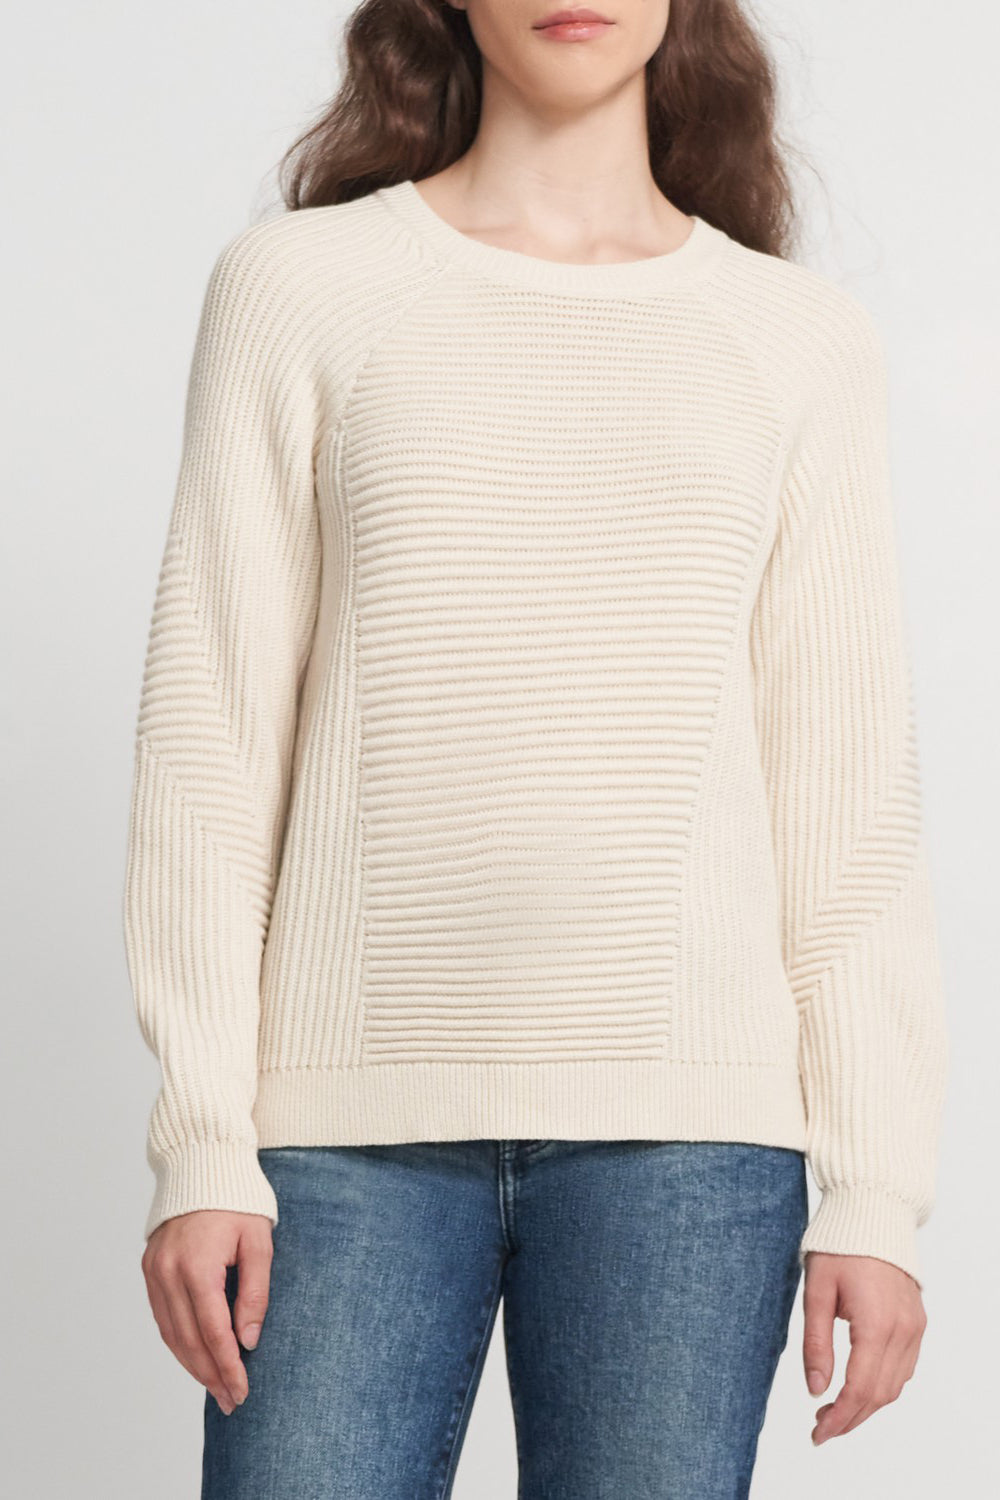 j brand george sweater awfwite